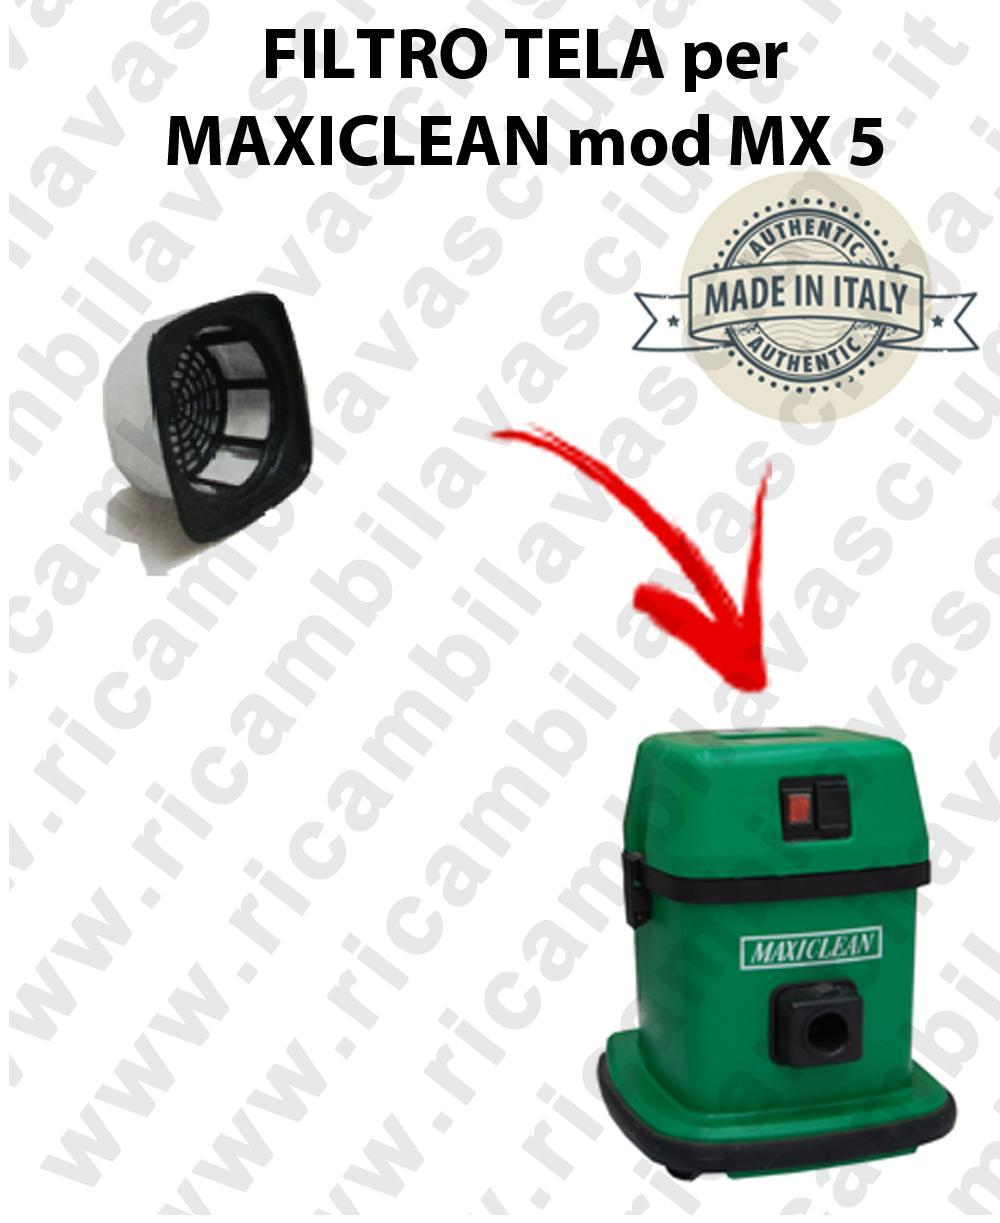 Canvas filter for vacuum cleaner MAXICLEAN model MX5 - BY SYNCLEAN